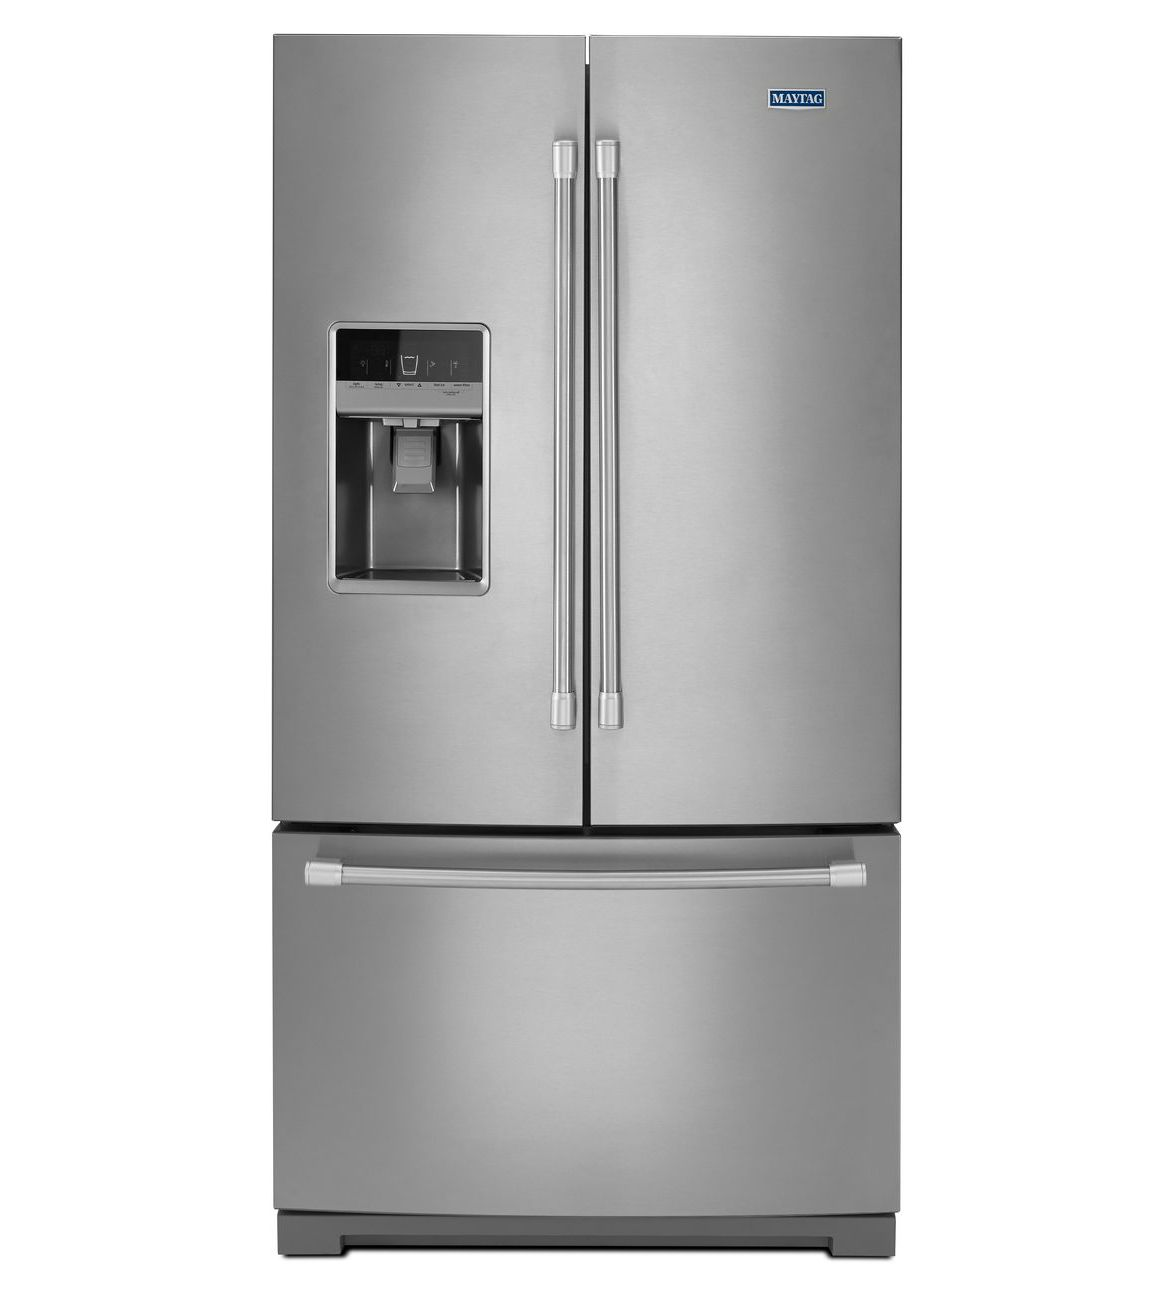 Best Rated Kitchen Appliances: Maytag Large Kitchen Appliances Review